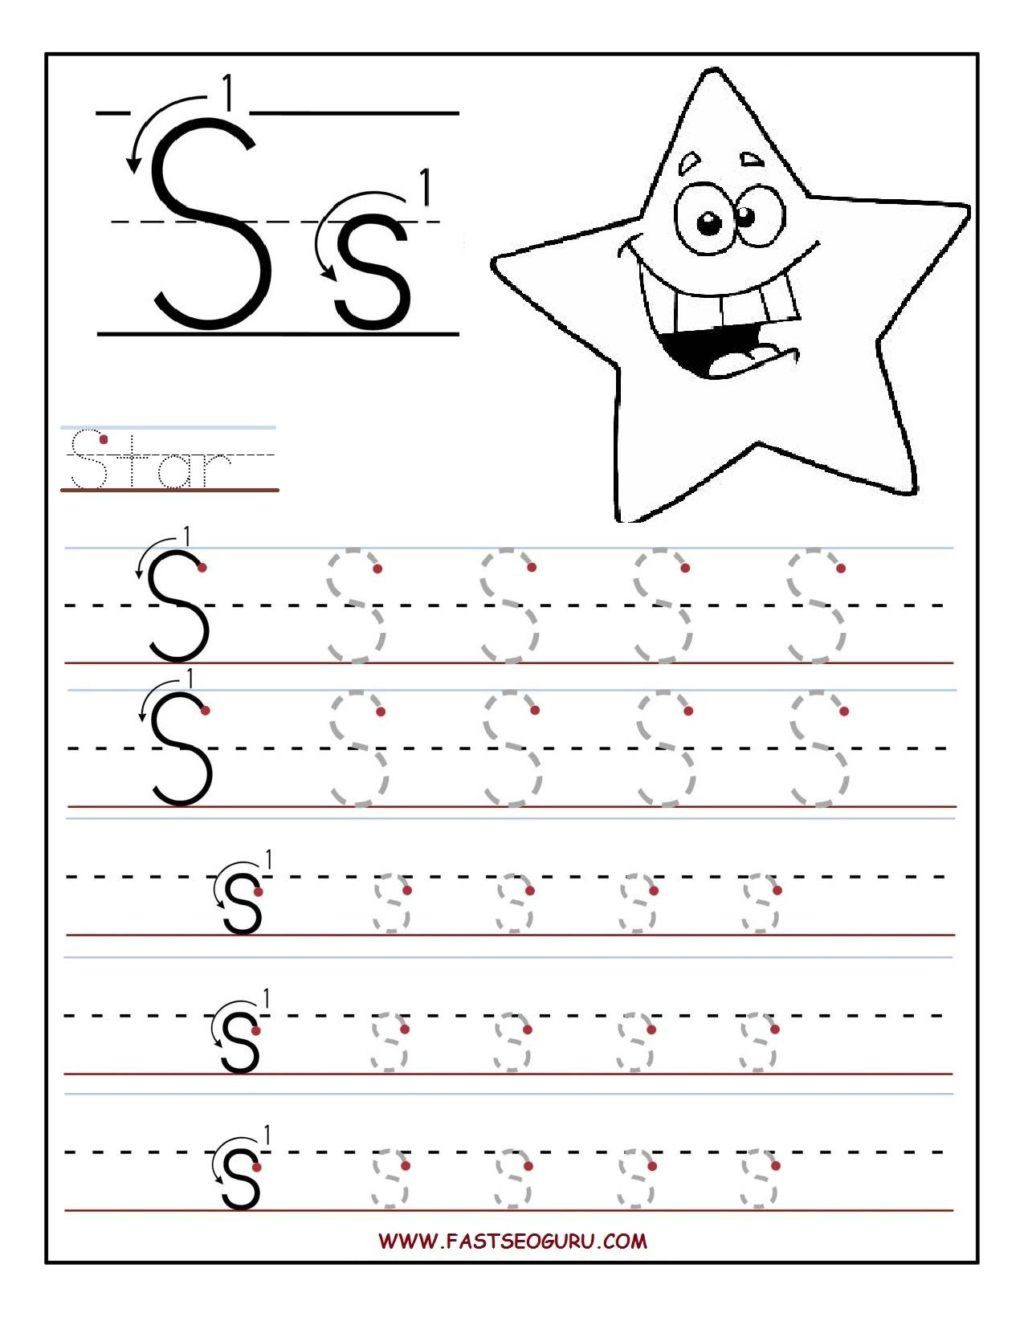 Letter P Preschool Worksheets Worksheet Letter Learning Sheets Preschool Games P Free